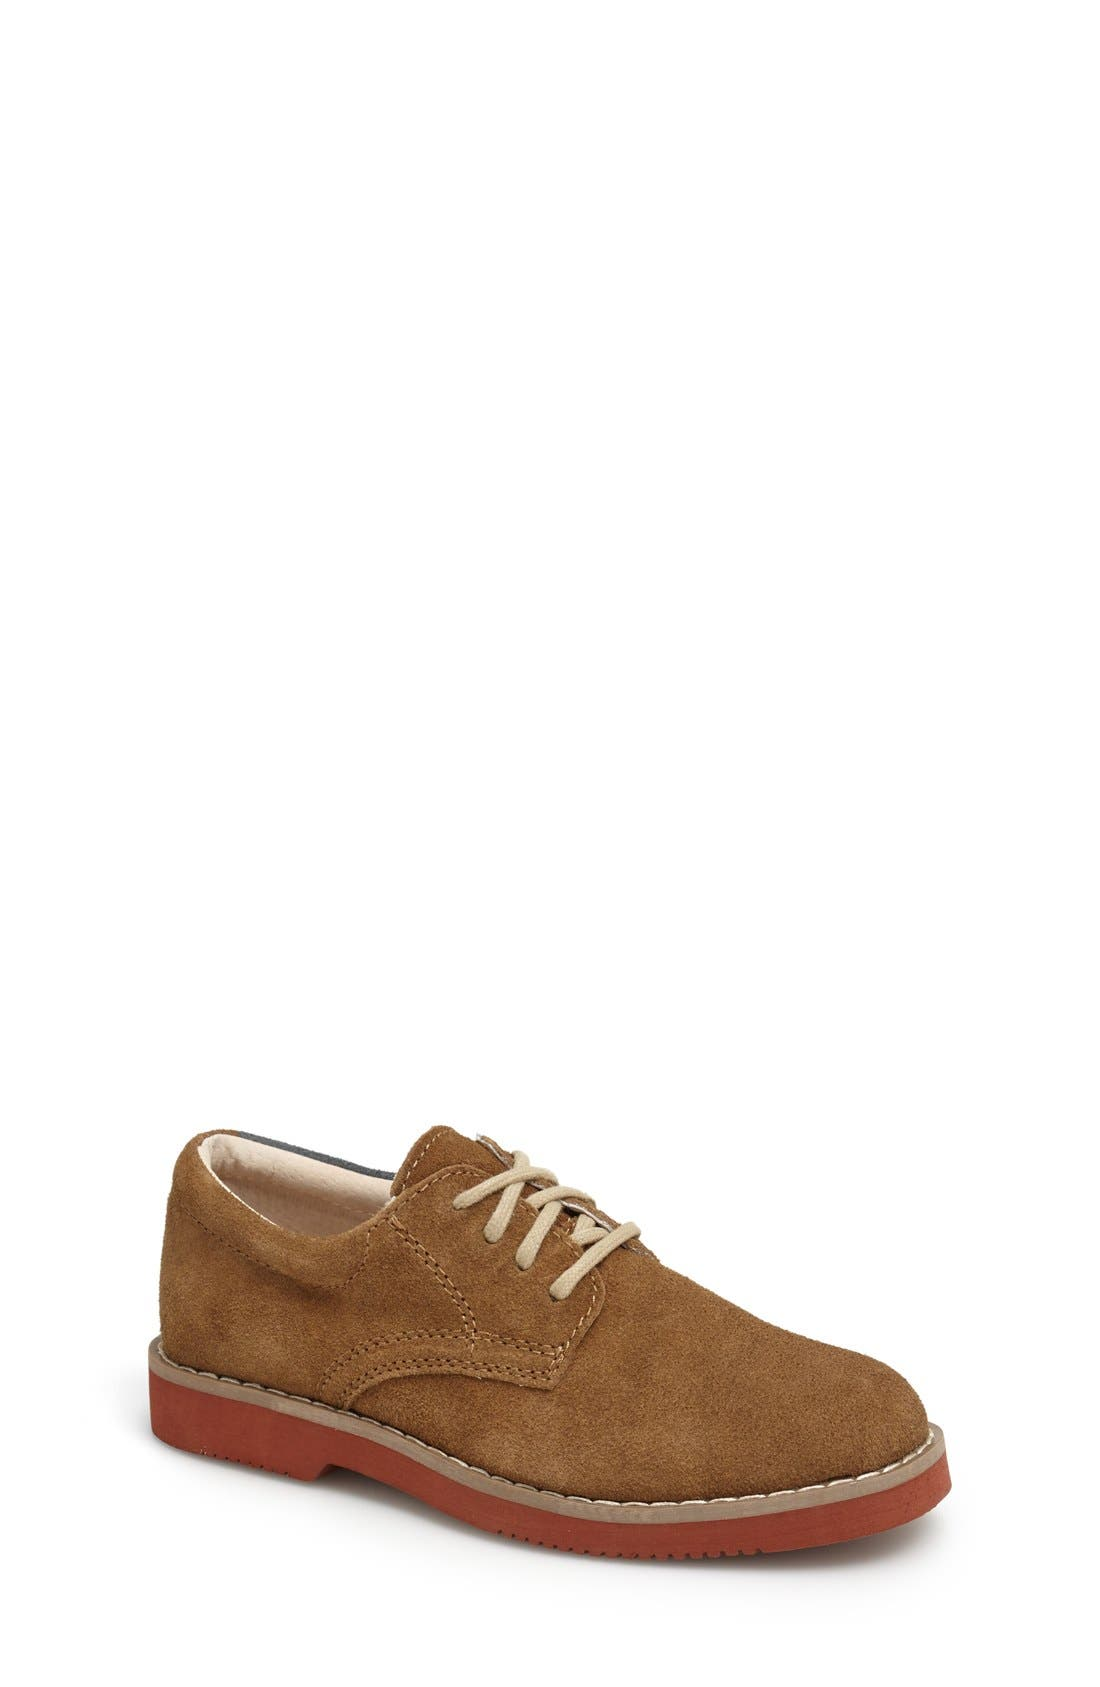 Tucker + Tate by Nordstrom 'Cameron' Oxford (Walker, Toddler, Little Kid & Big Kid)